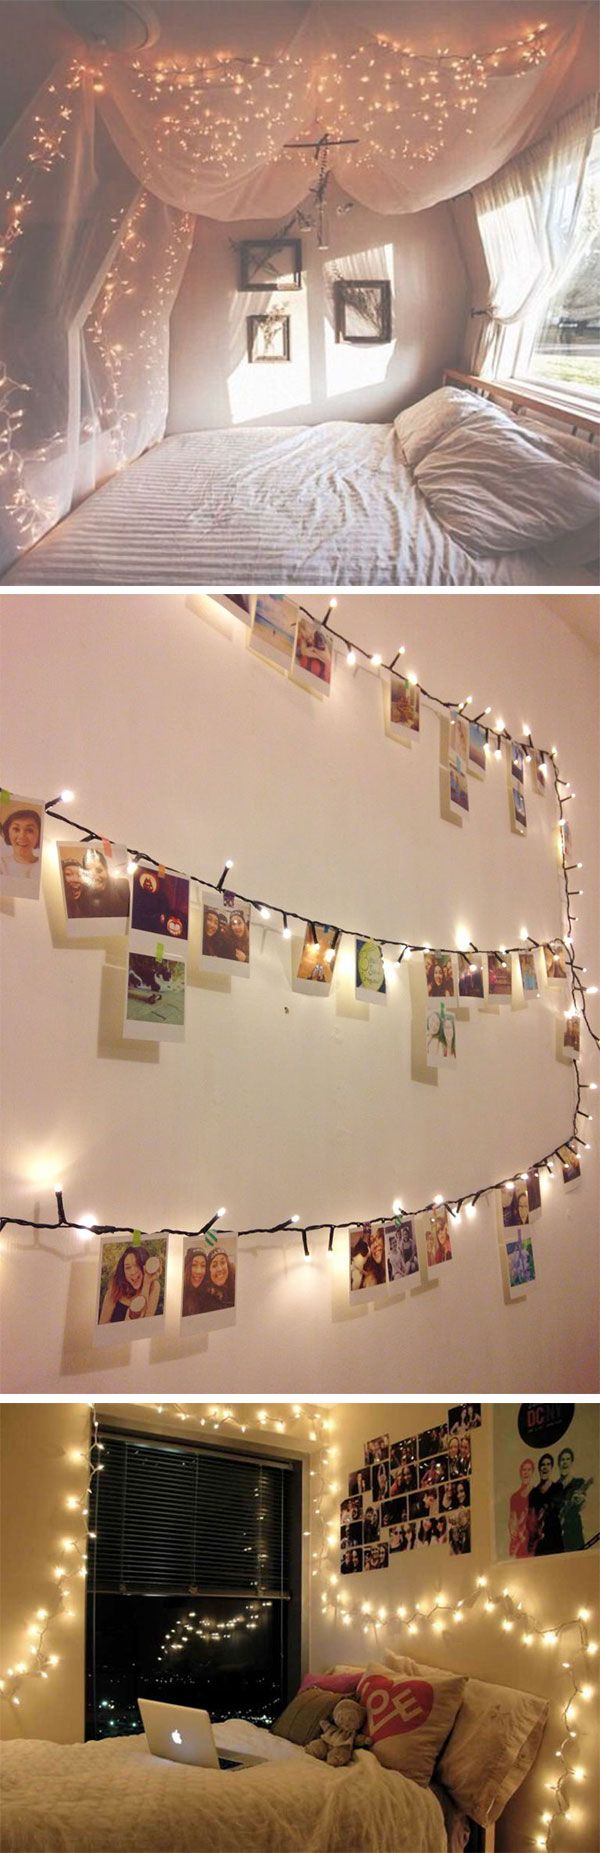 13 ways to use fairy lights to make your home look magical room decor - Home Room Decor